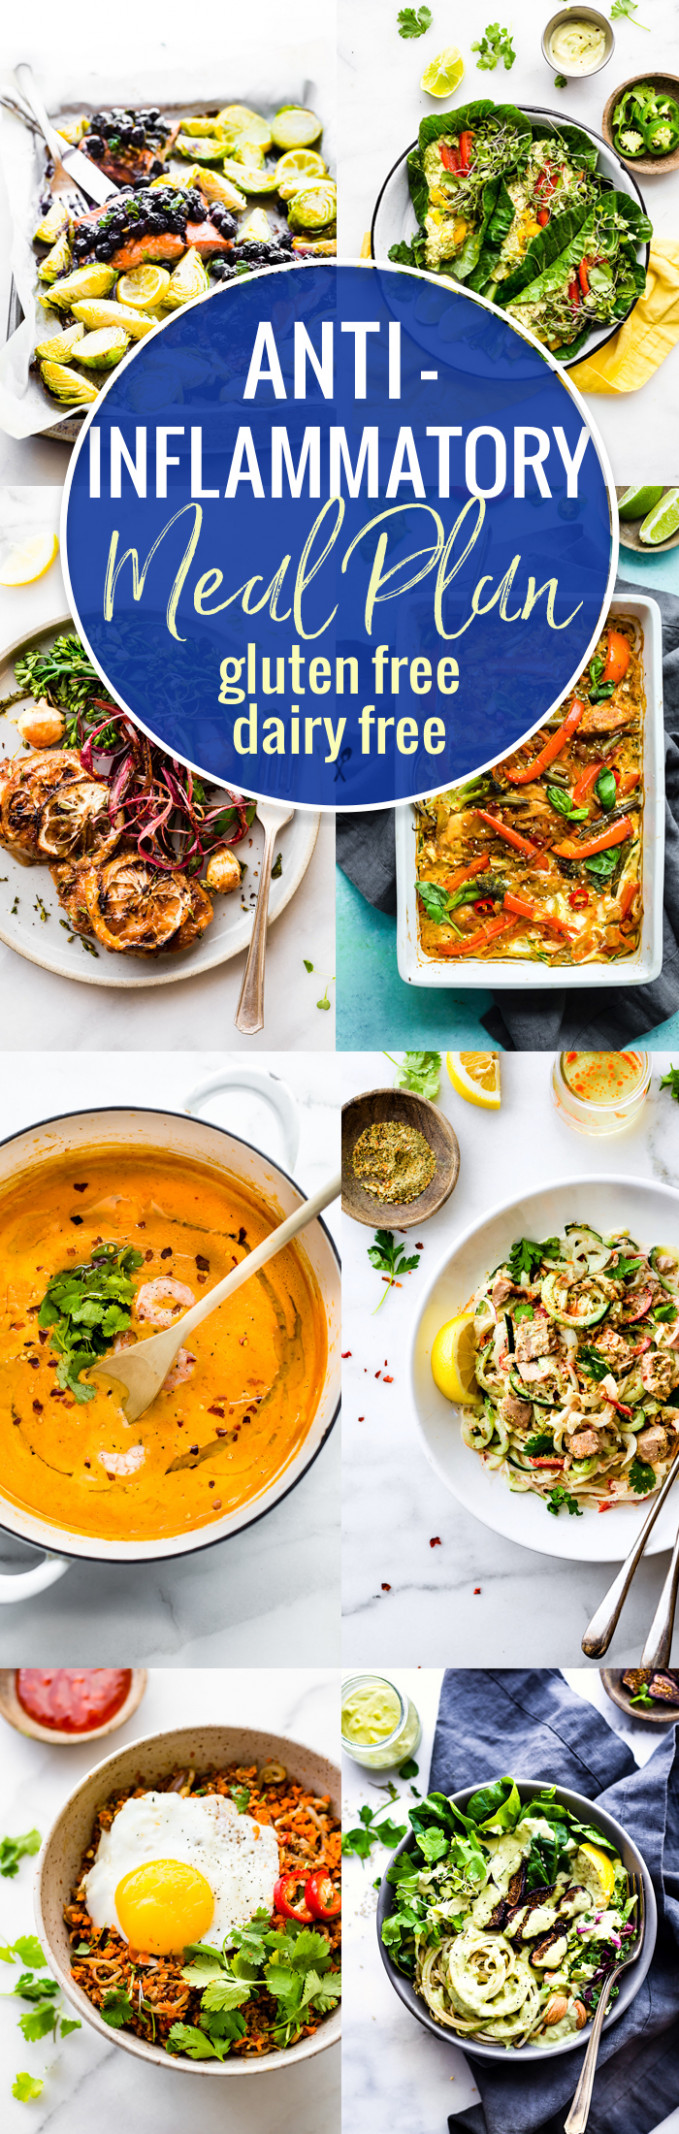 Anti Inflammatory Meal Plan Of Dairy Free And Gluten Free ..